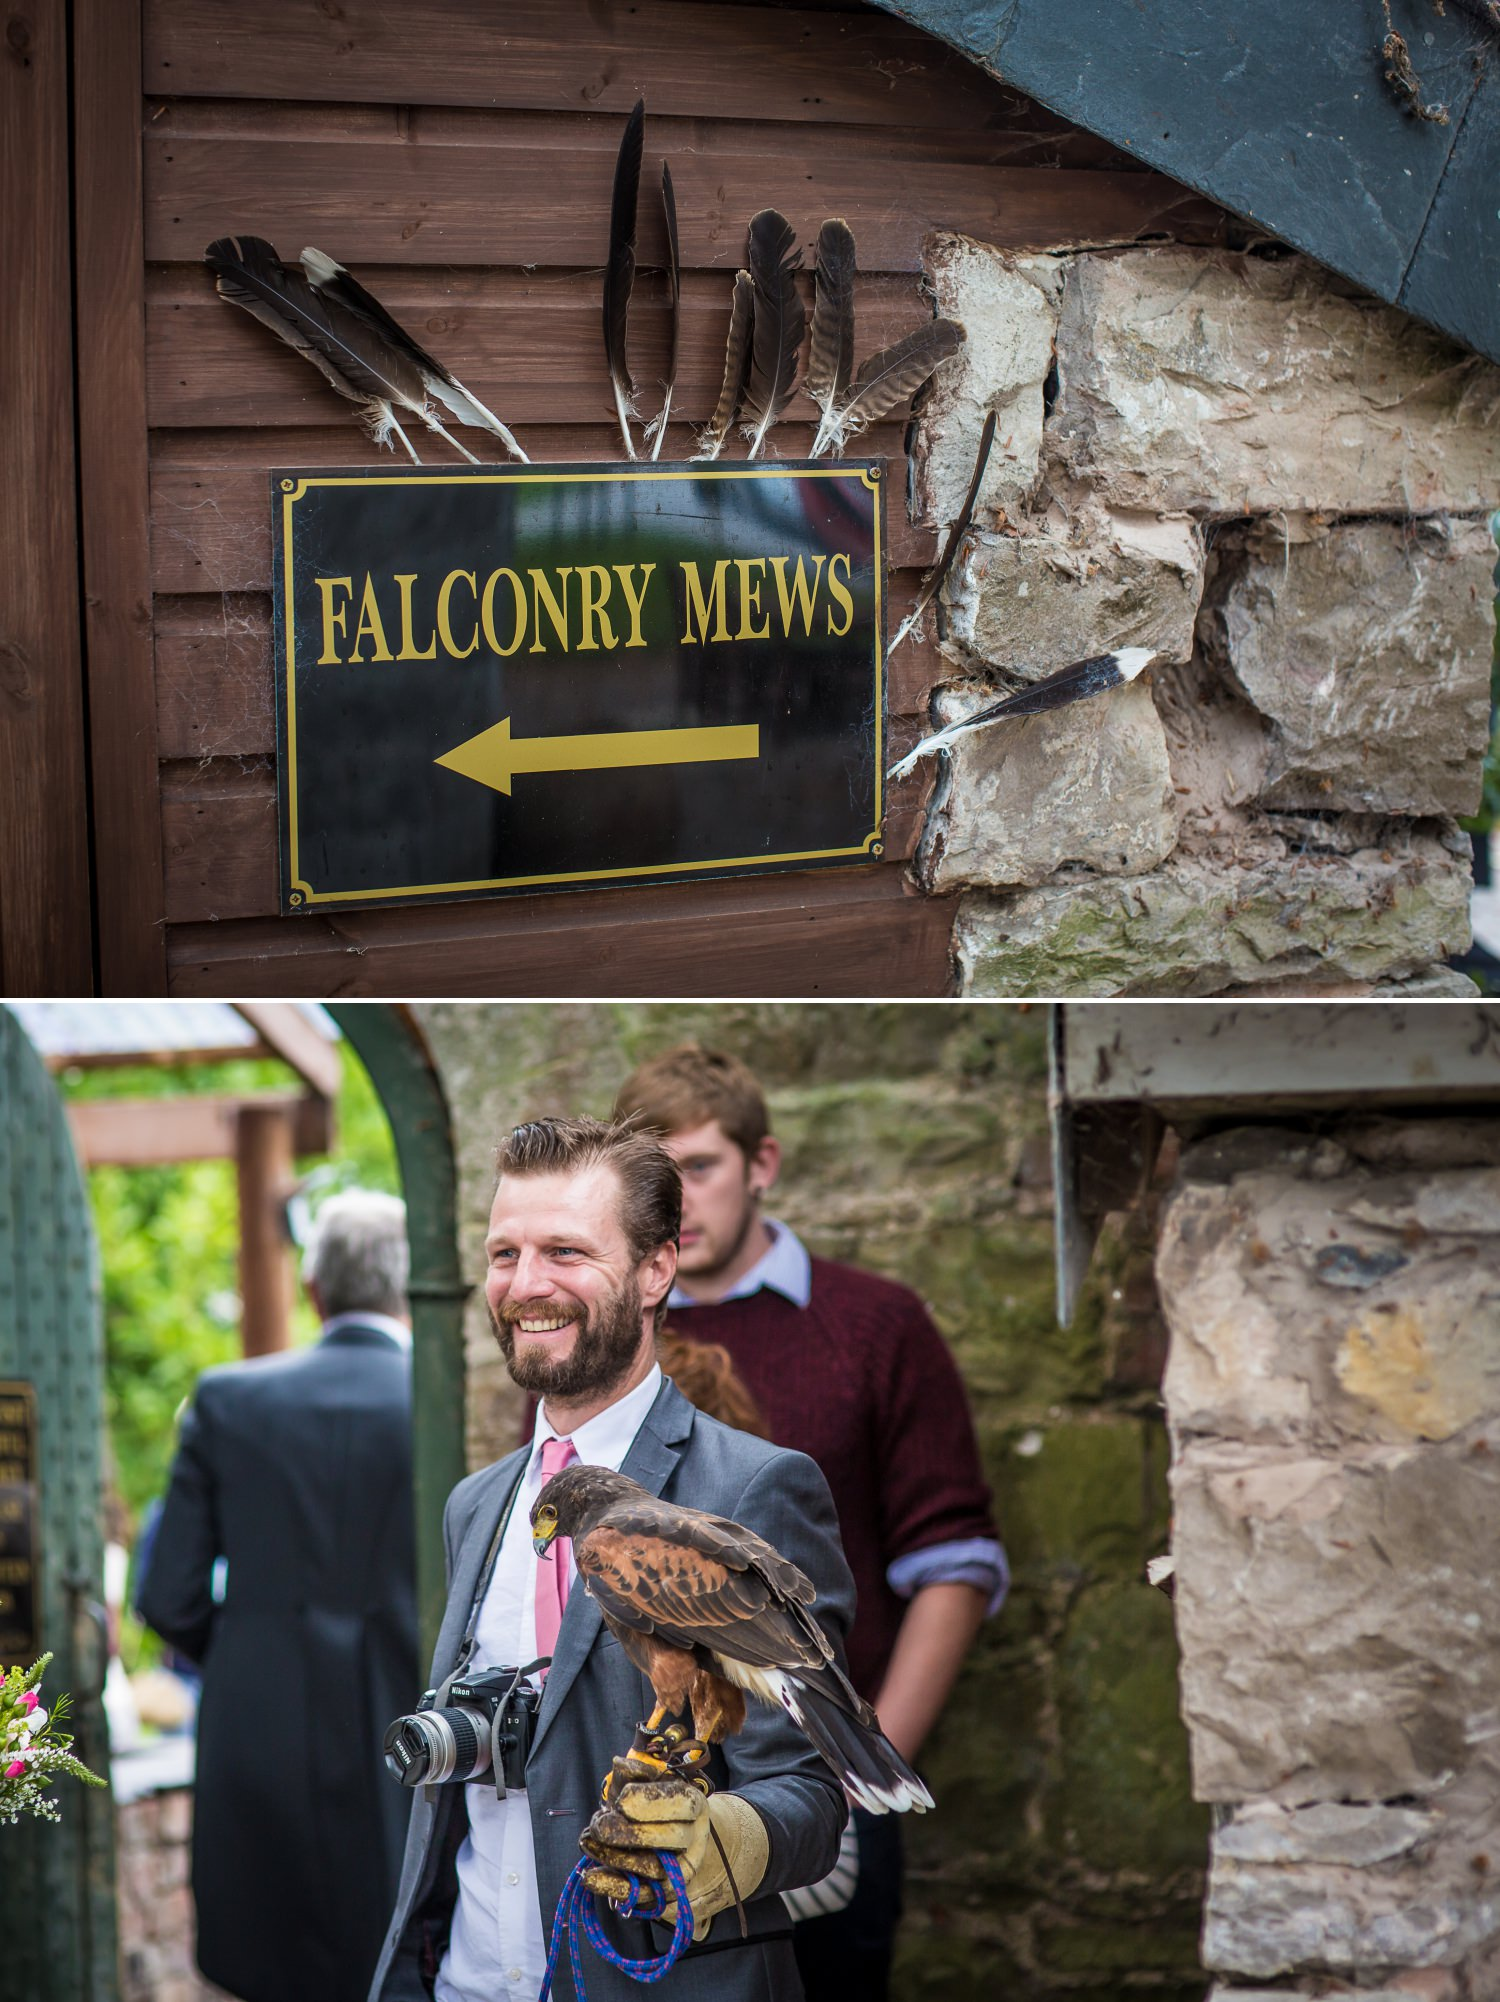 Pentre Mawr Country House Wedding photograph of the falconry